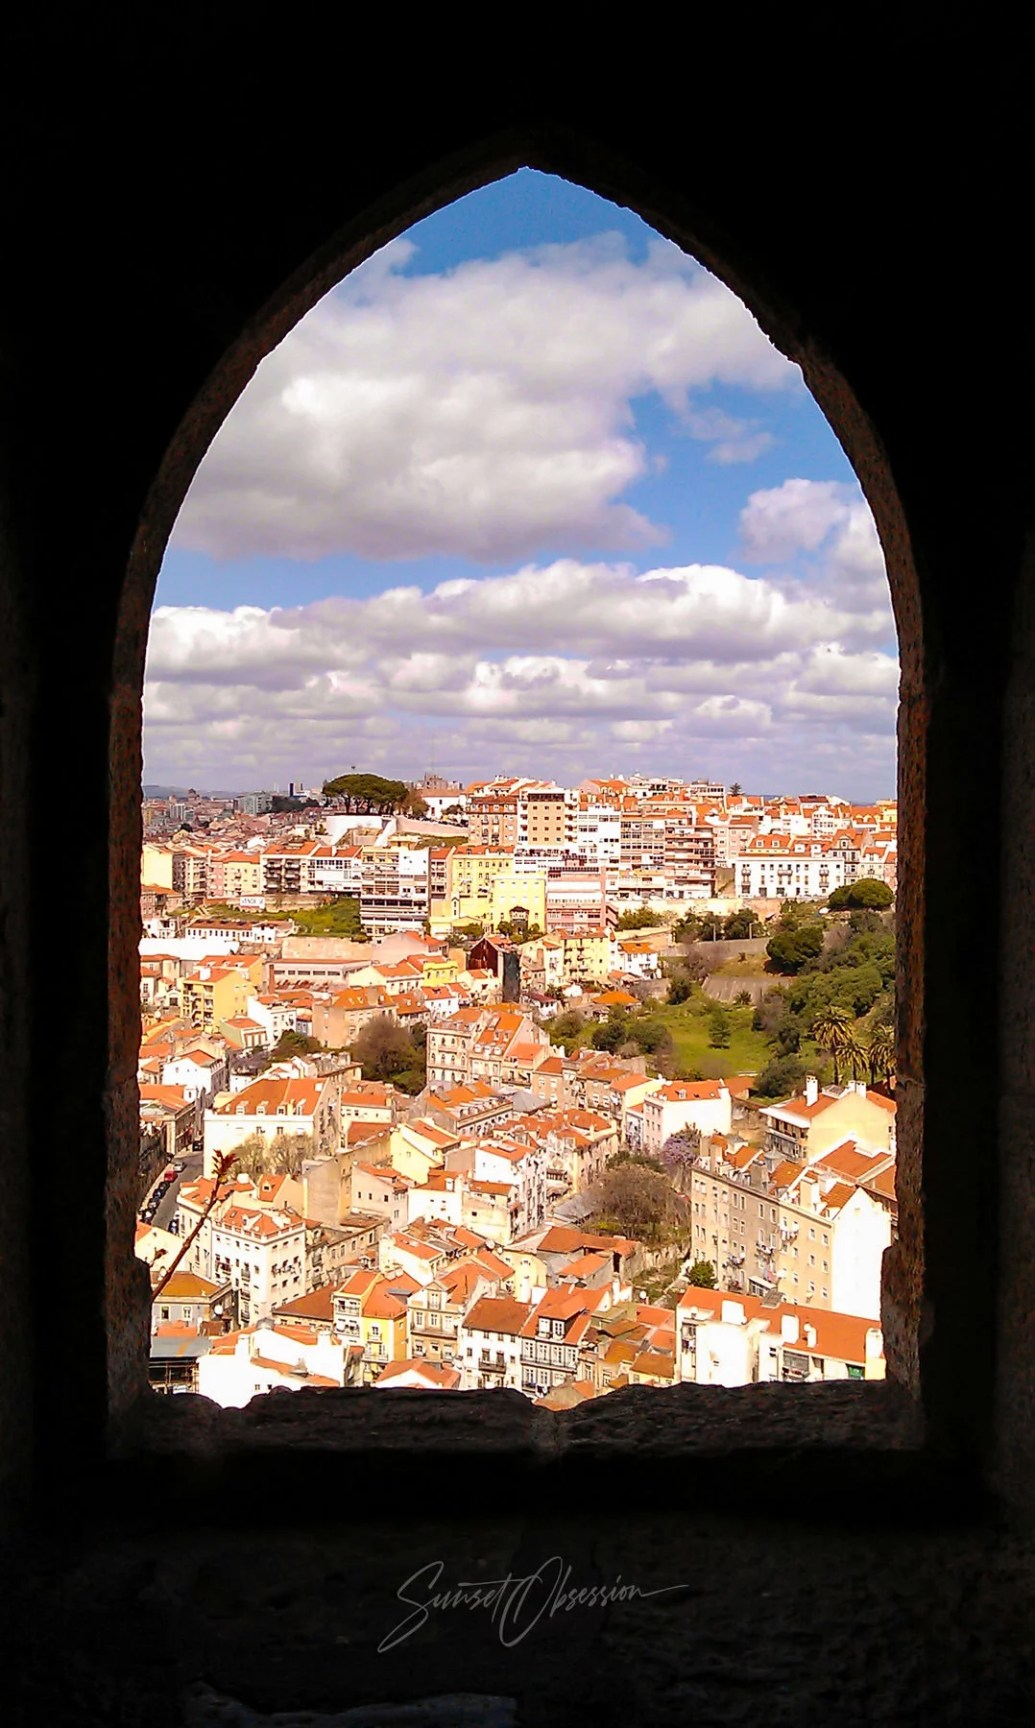 Daytime view of Lisbon from within the castle